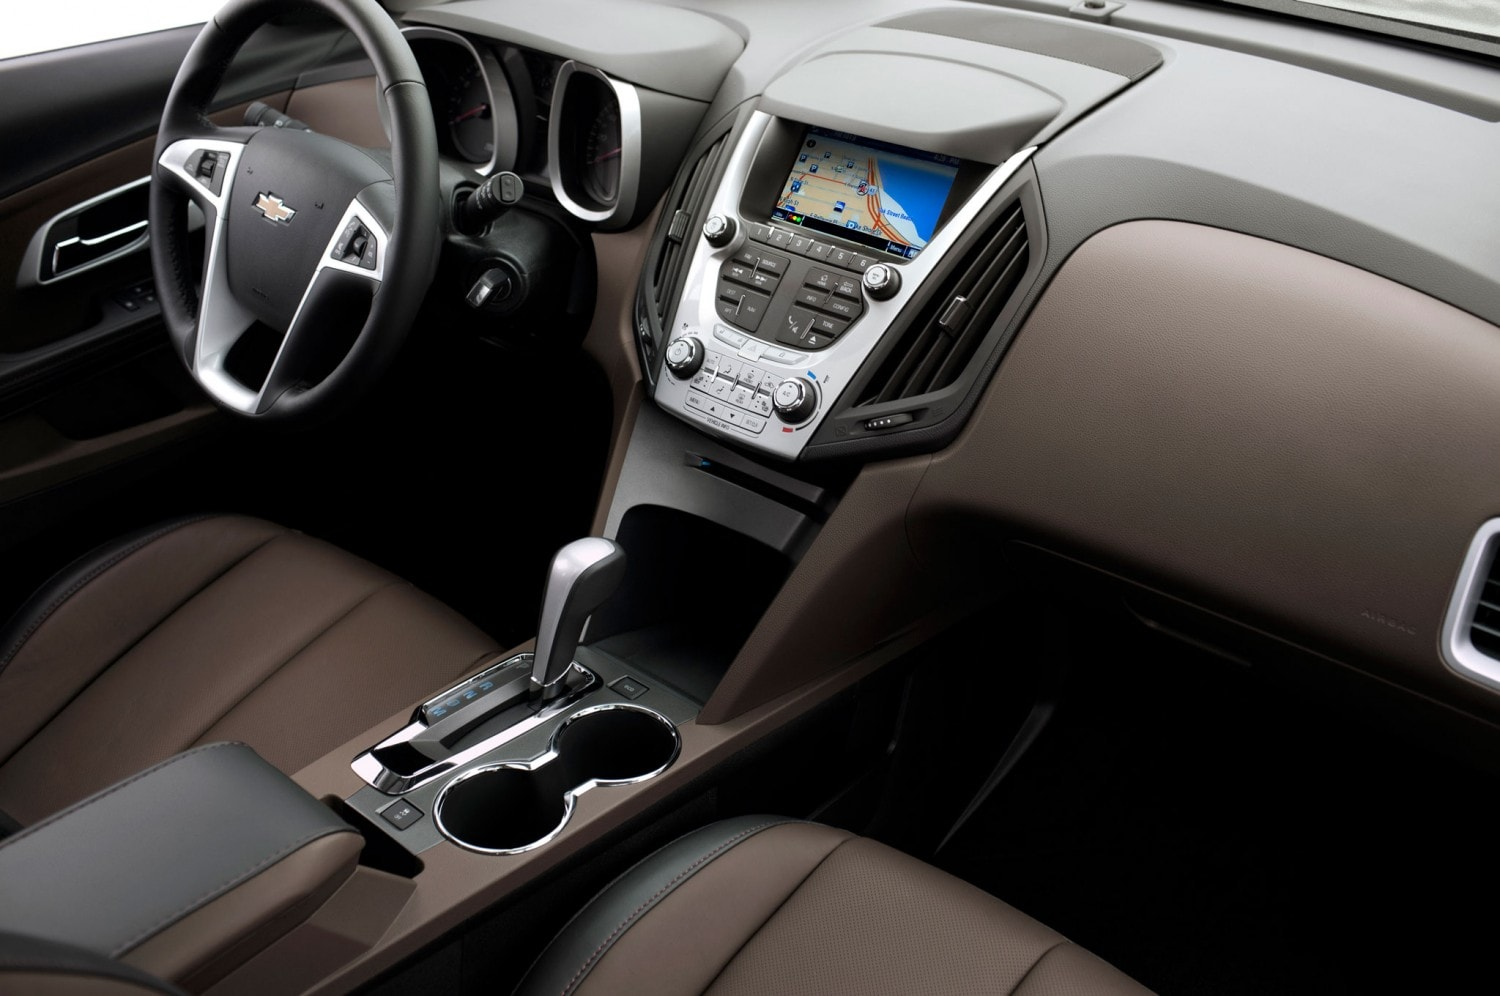 2014 Chevrolet Equinox Review From Kelly Blue Book At Carr Chevrolet